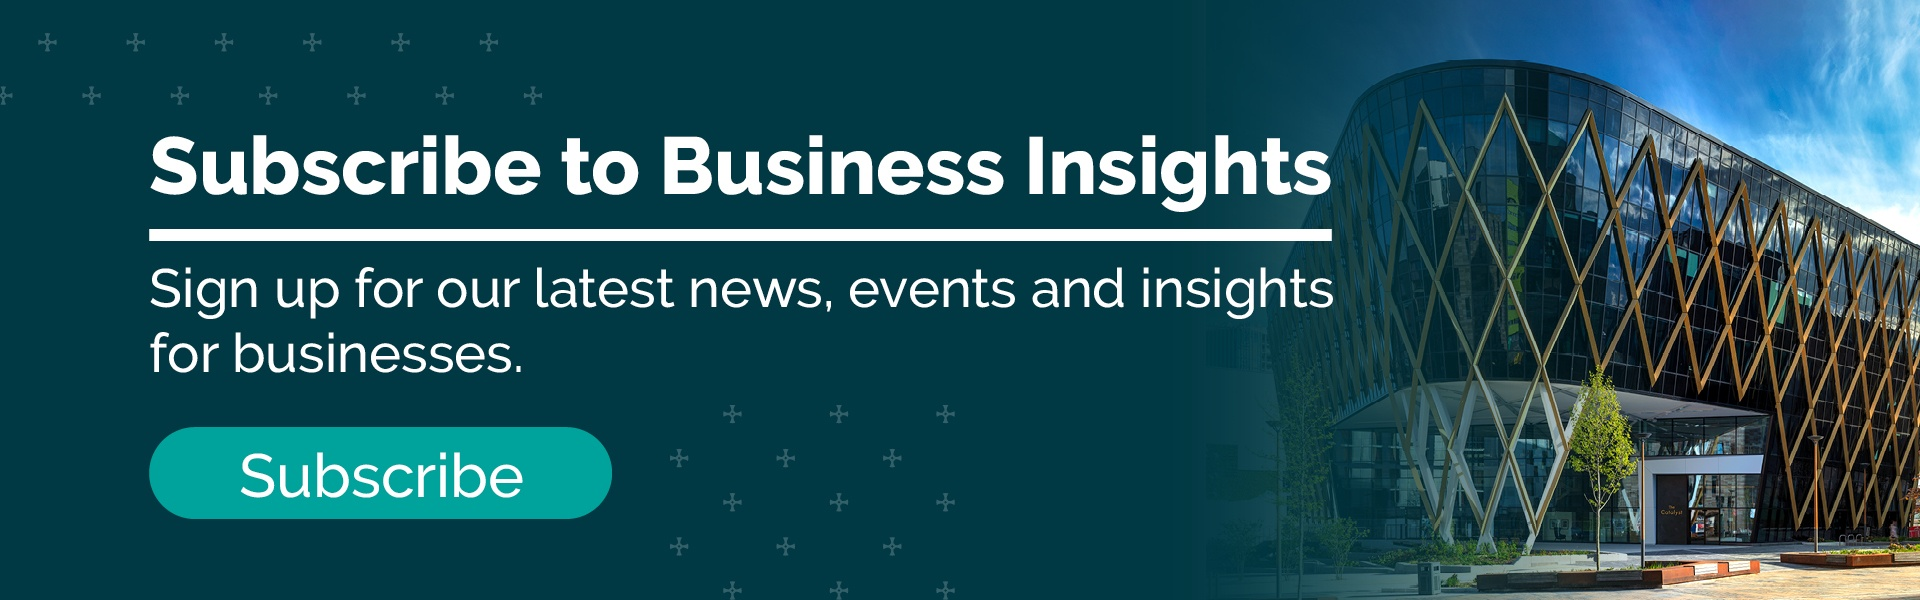 Click to sign up for our latest news, events and insights for businesses